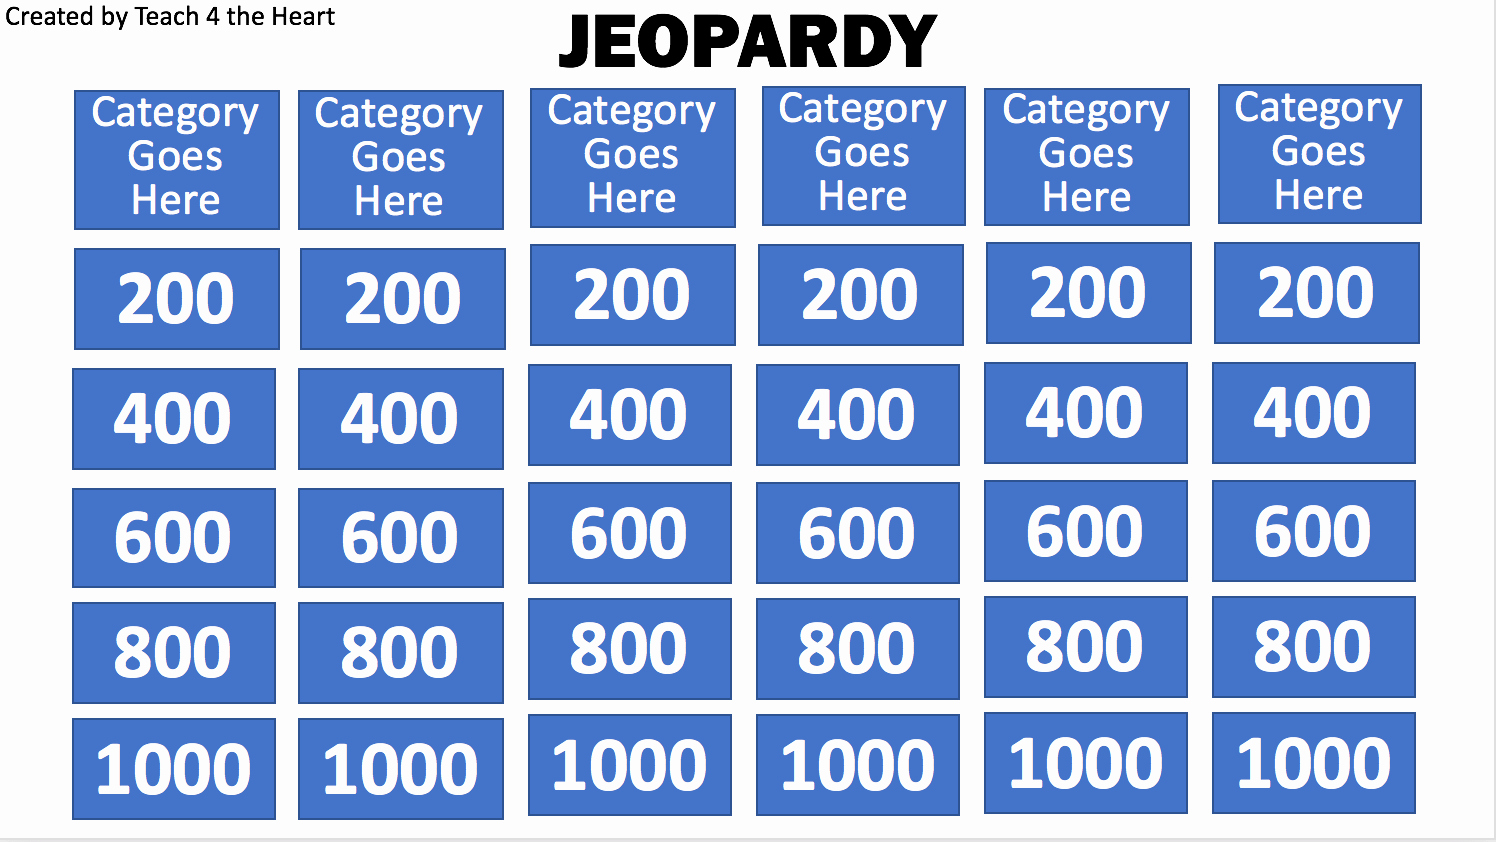 Jeopardy Powerpoint Template 4 Categories Best Of 7 Classroom Review Games that Won T Waste Time